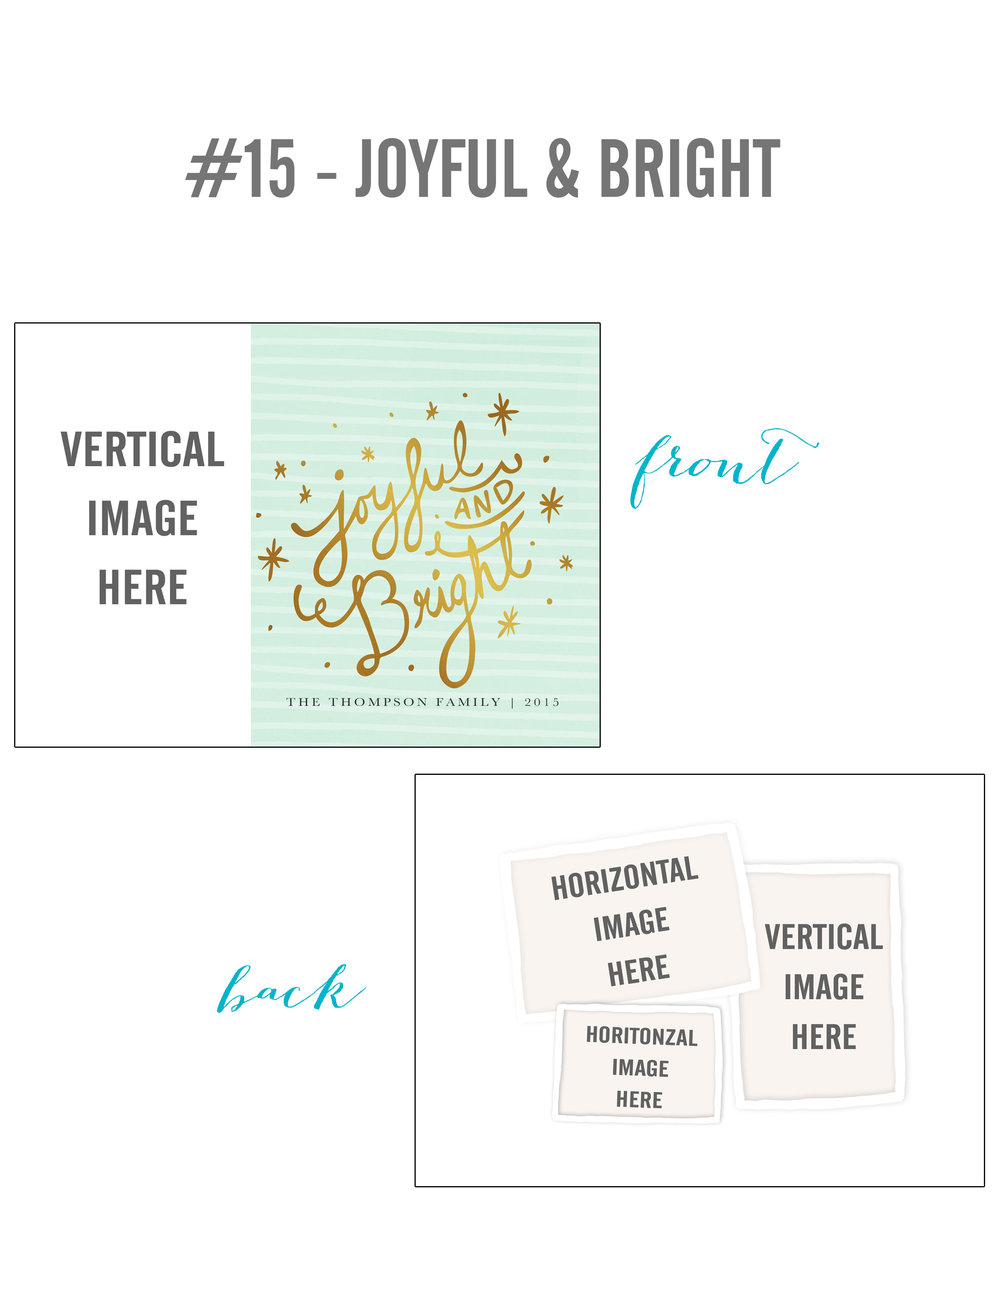 15-JOYFUL & BRIGHT.jpg